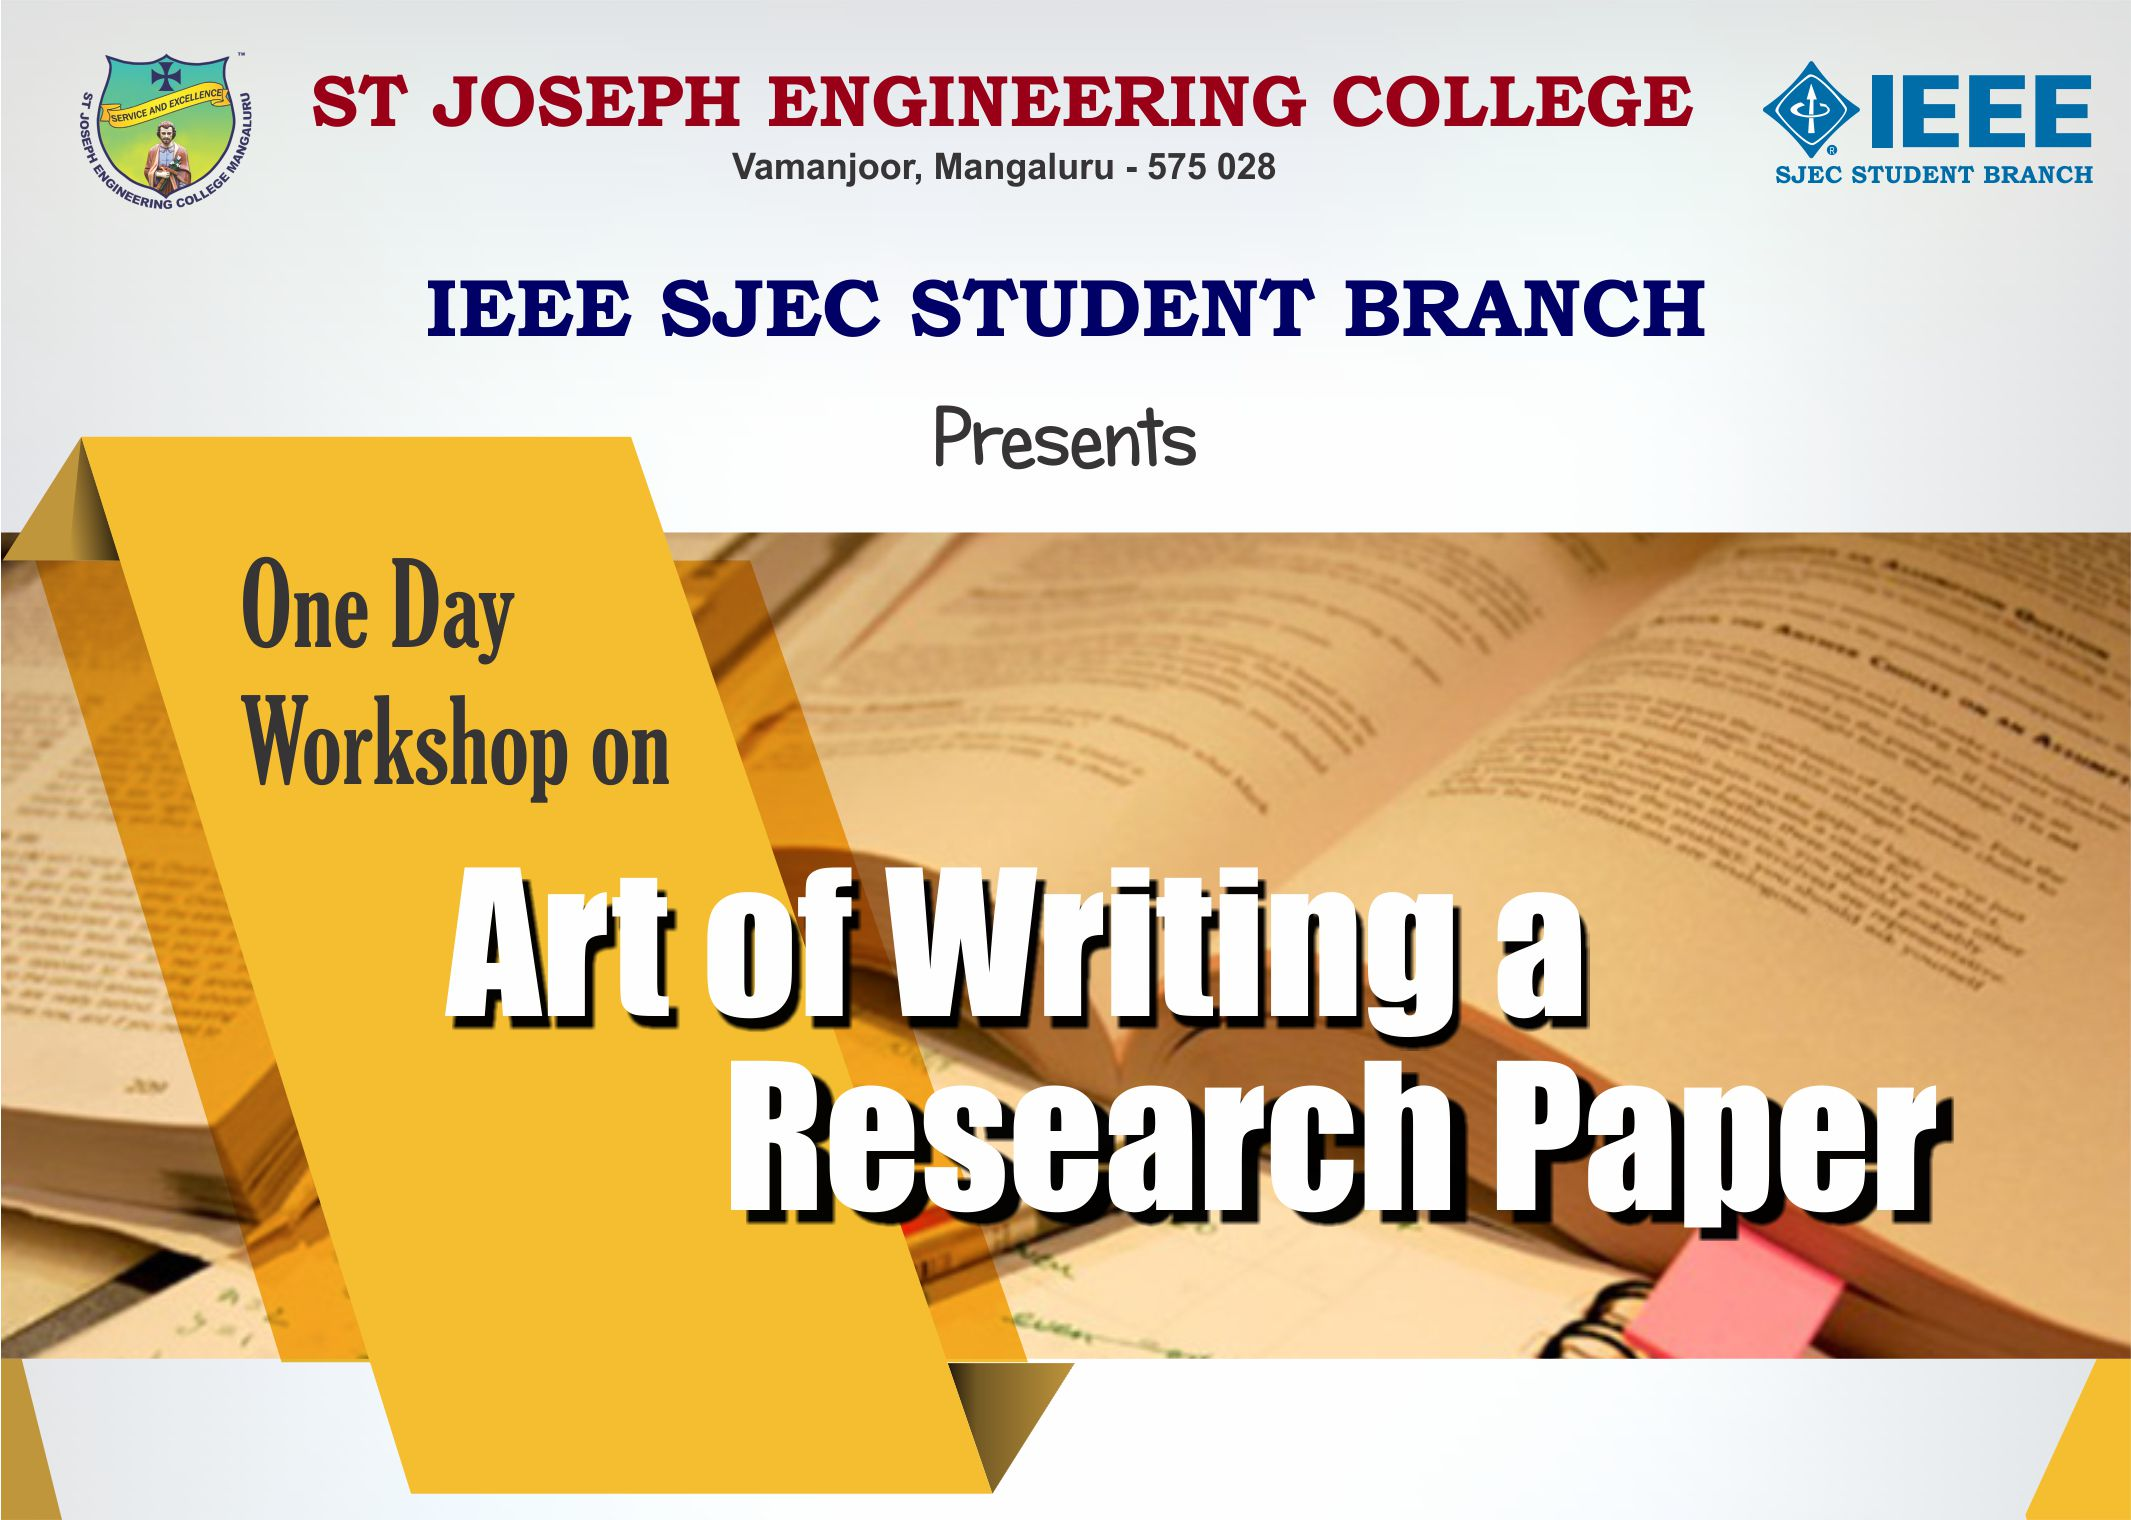 005 Workshop Banner Research Paper Writing Unique Papers A Complete Guide 15th Edition Ebook 16th Pdf Free Full